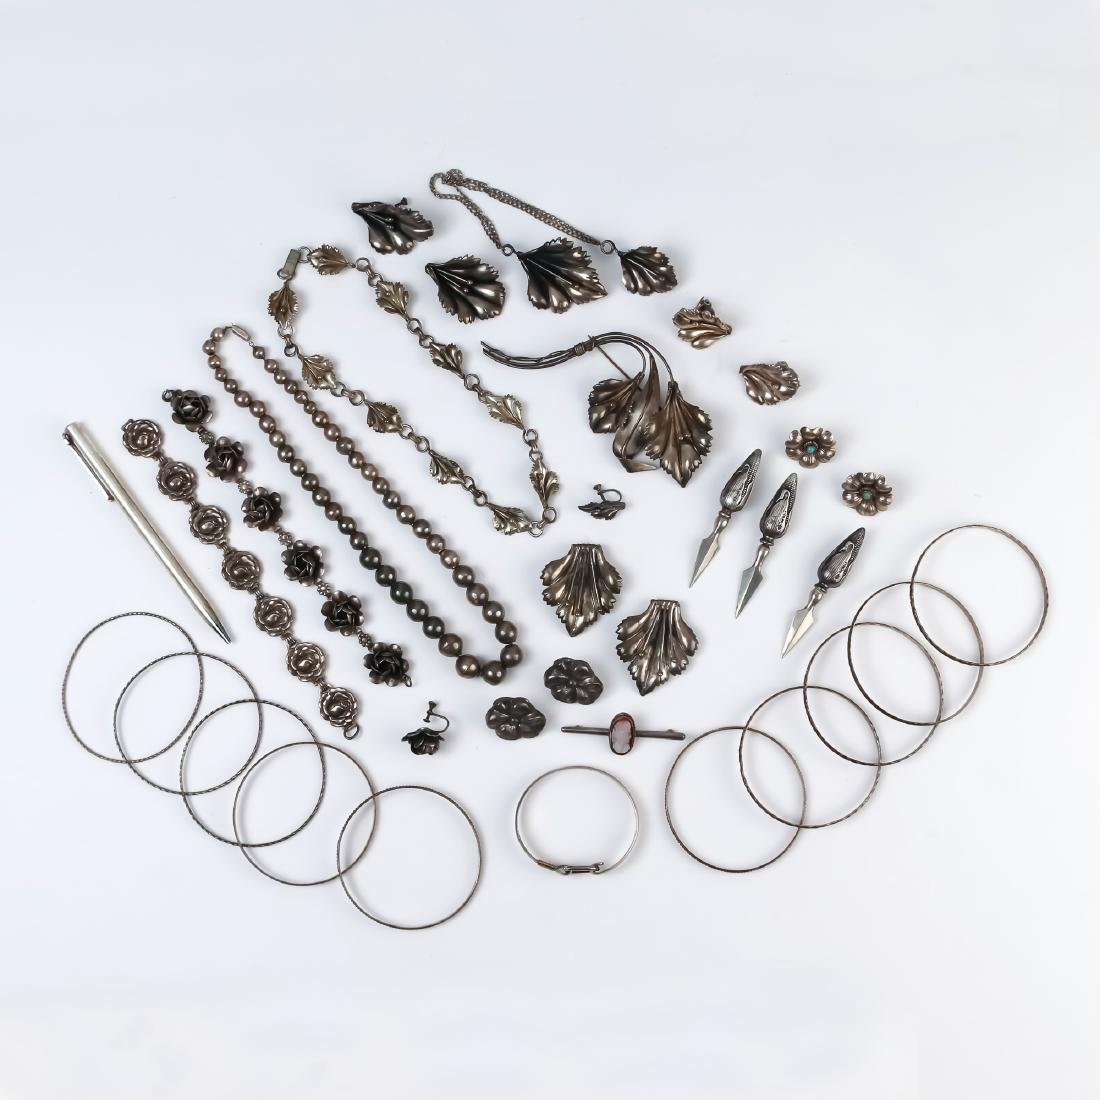 STERLING JEWELRY & OTHER